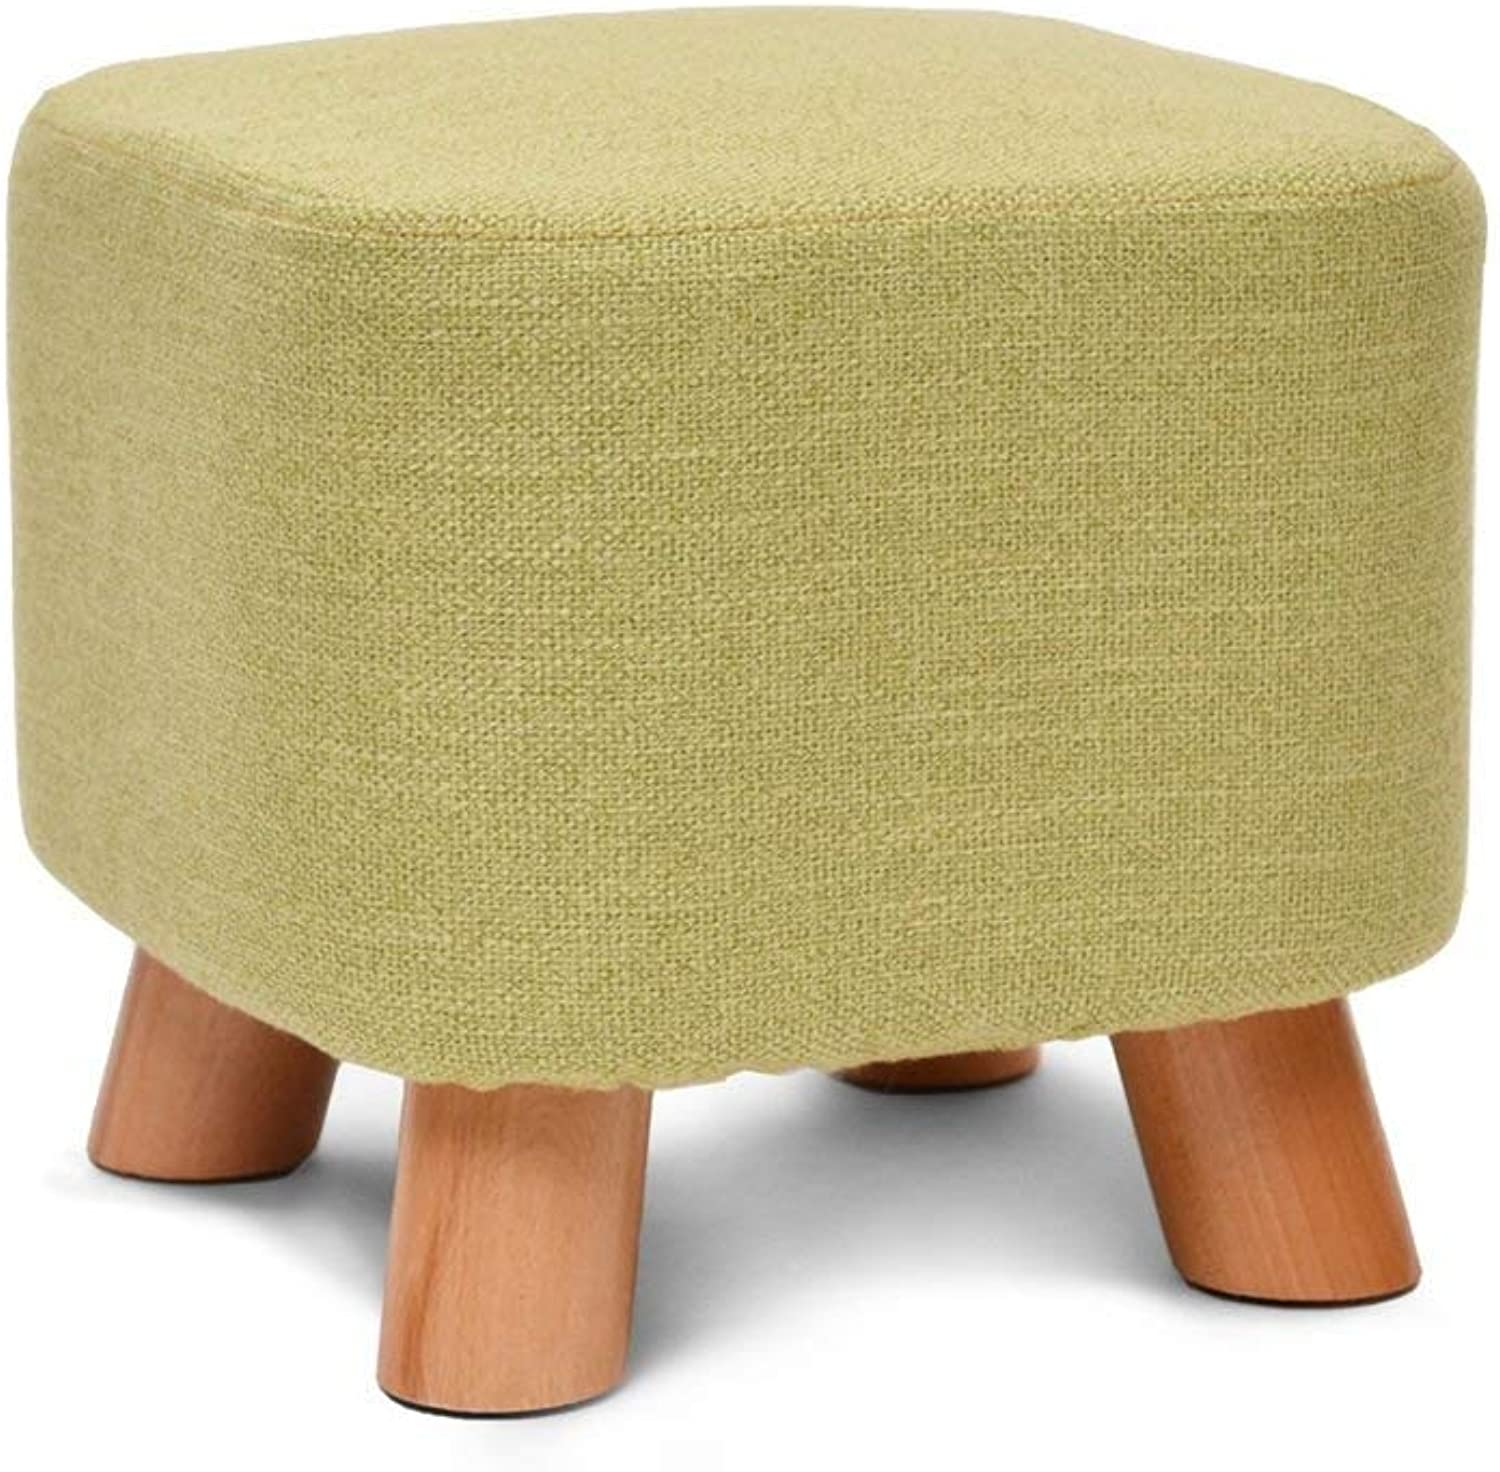 Small Stool, Multi-color Detachable Linen Cover 4 Wooden Legs Solid Wood Stool Home Small Seat Rest Chair shoes Stool Suitable for Living Room Bedroom (color   A)